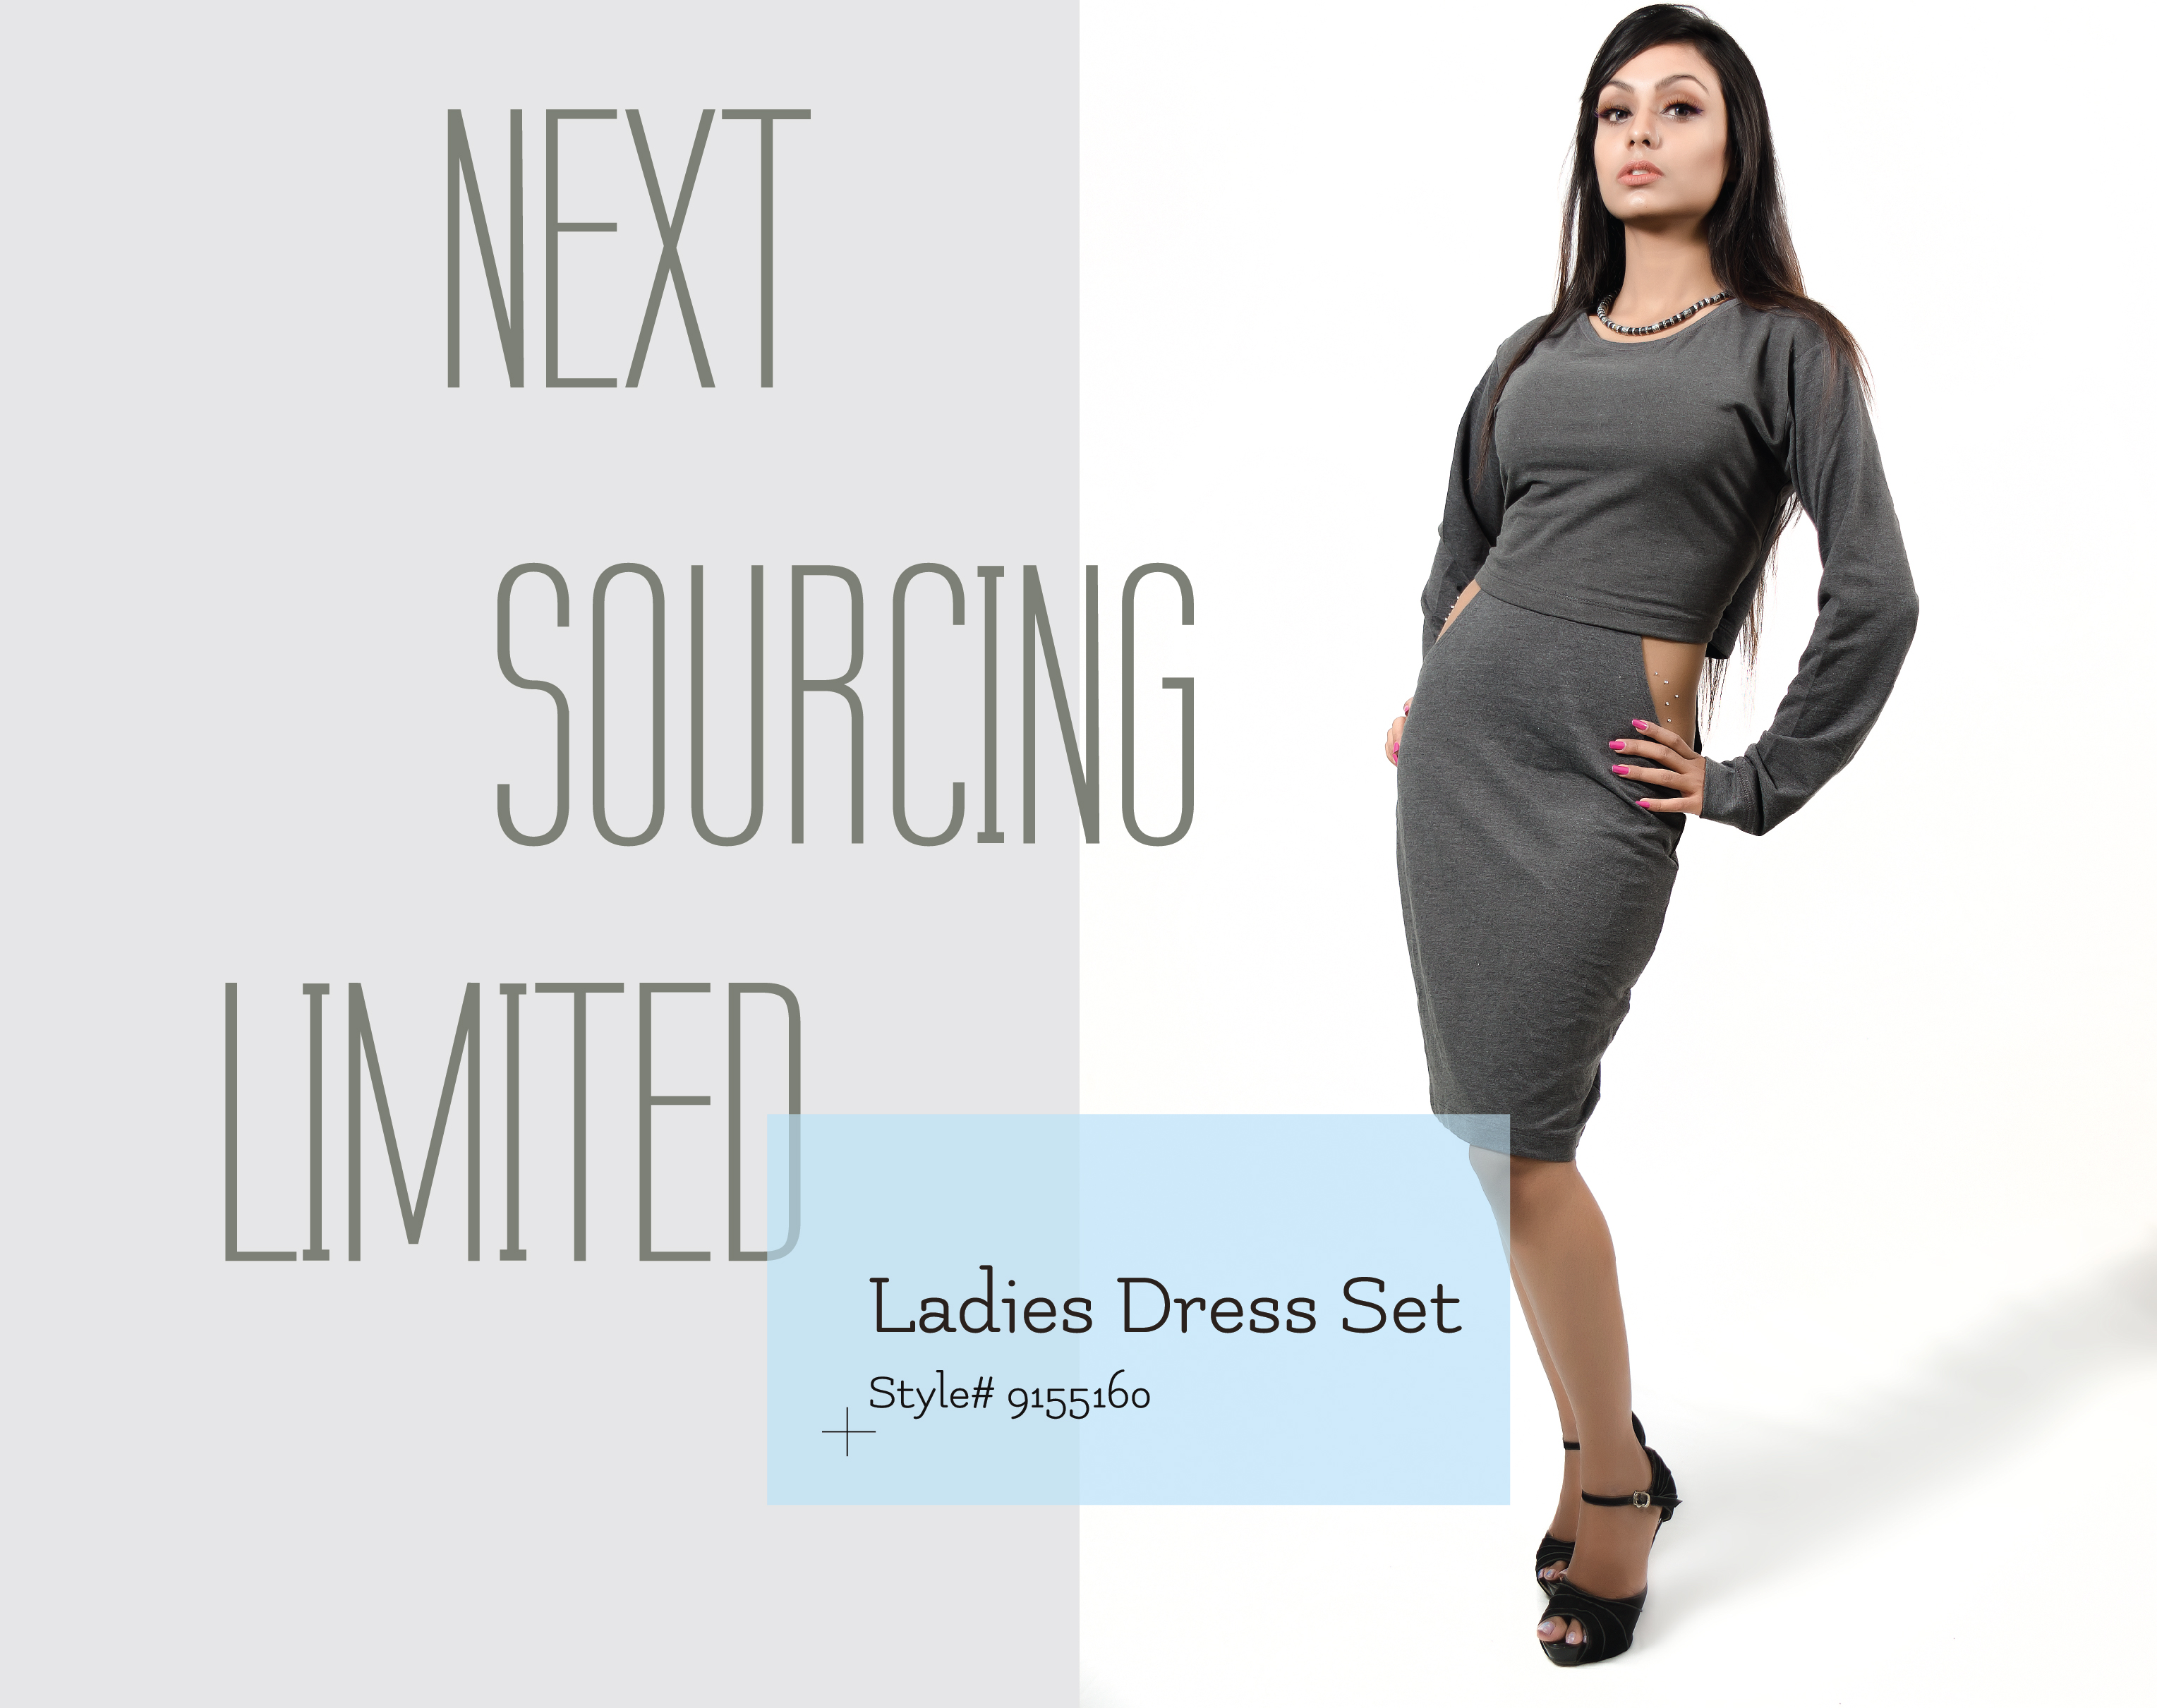 Ladies Dress Set